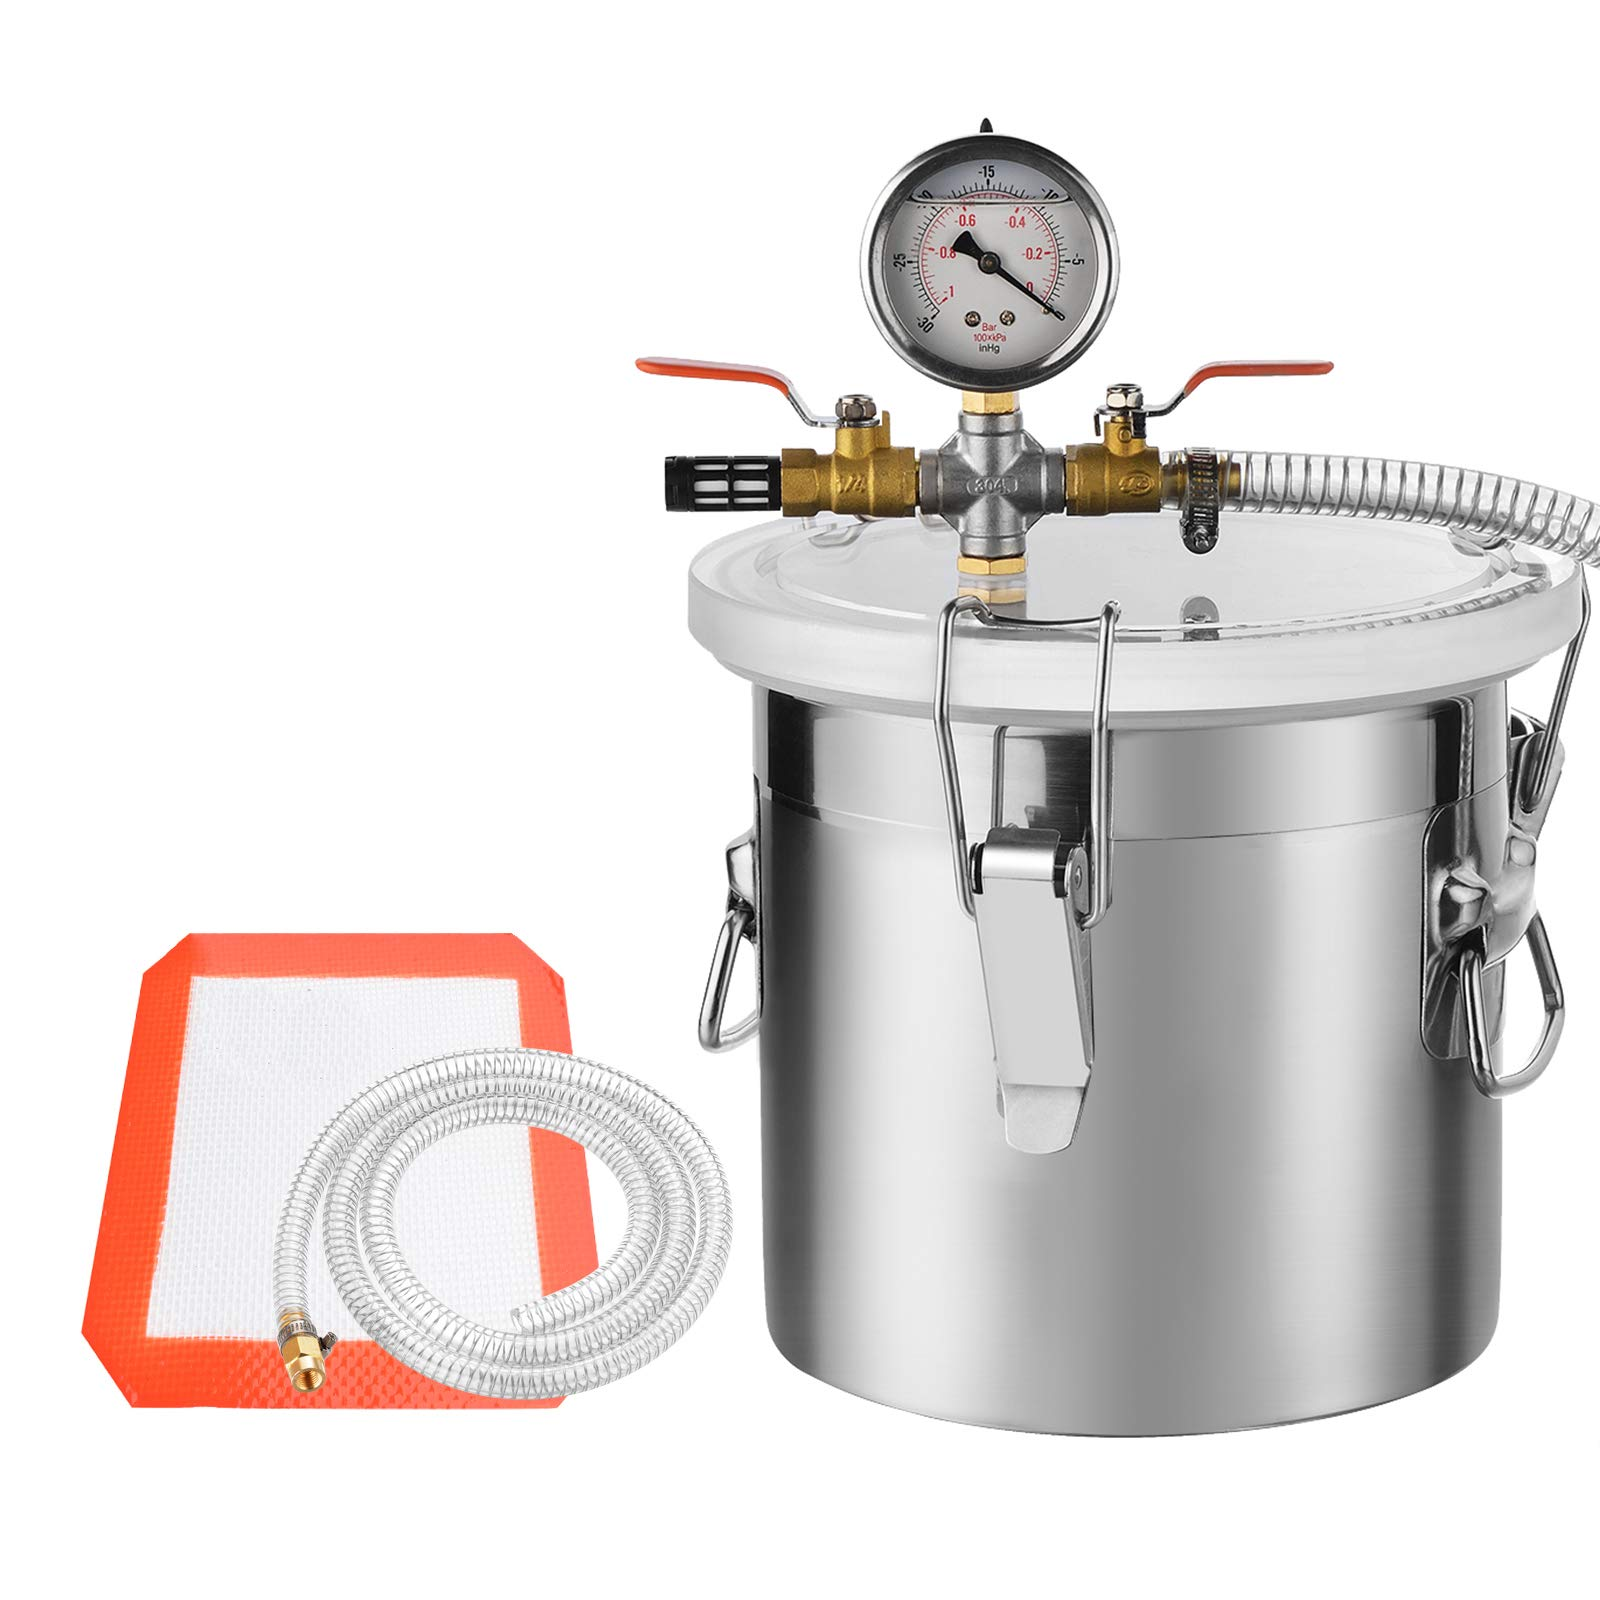 SUNCOO 5 Gallon Stainless Steel Vacuum Chamber for Degassing Urethanes, Resins, Silicones and Epoxies by SUNCOO